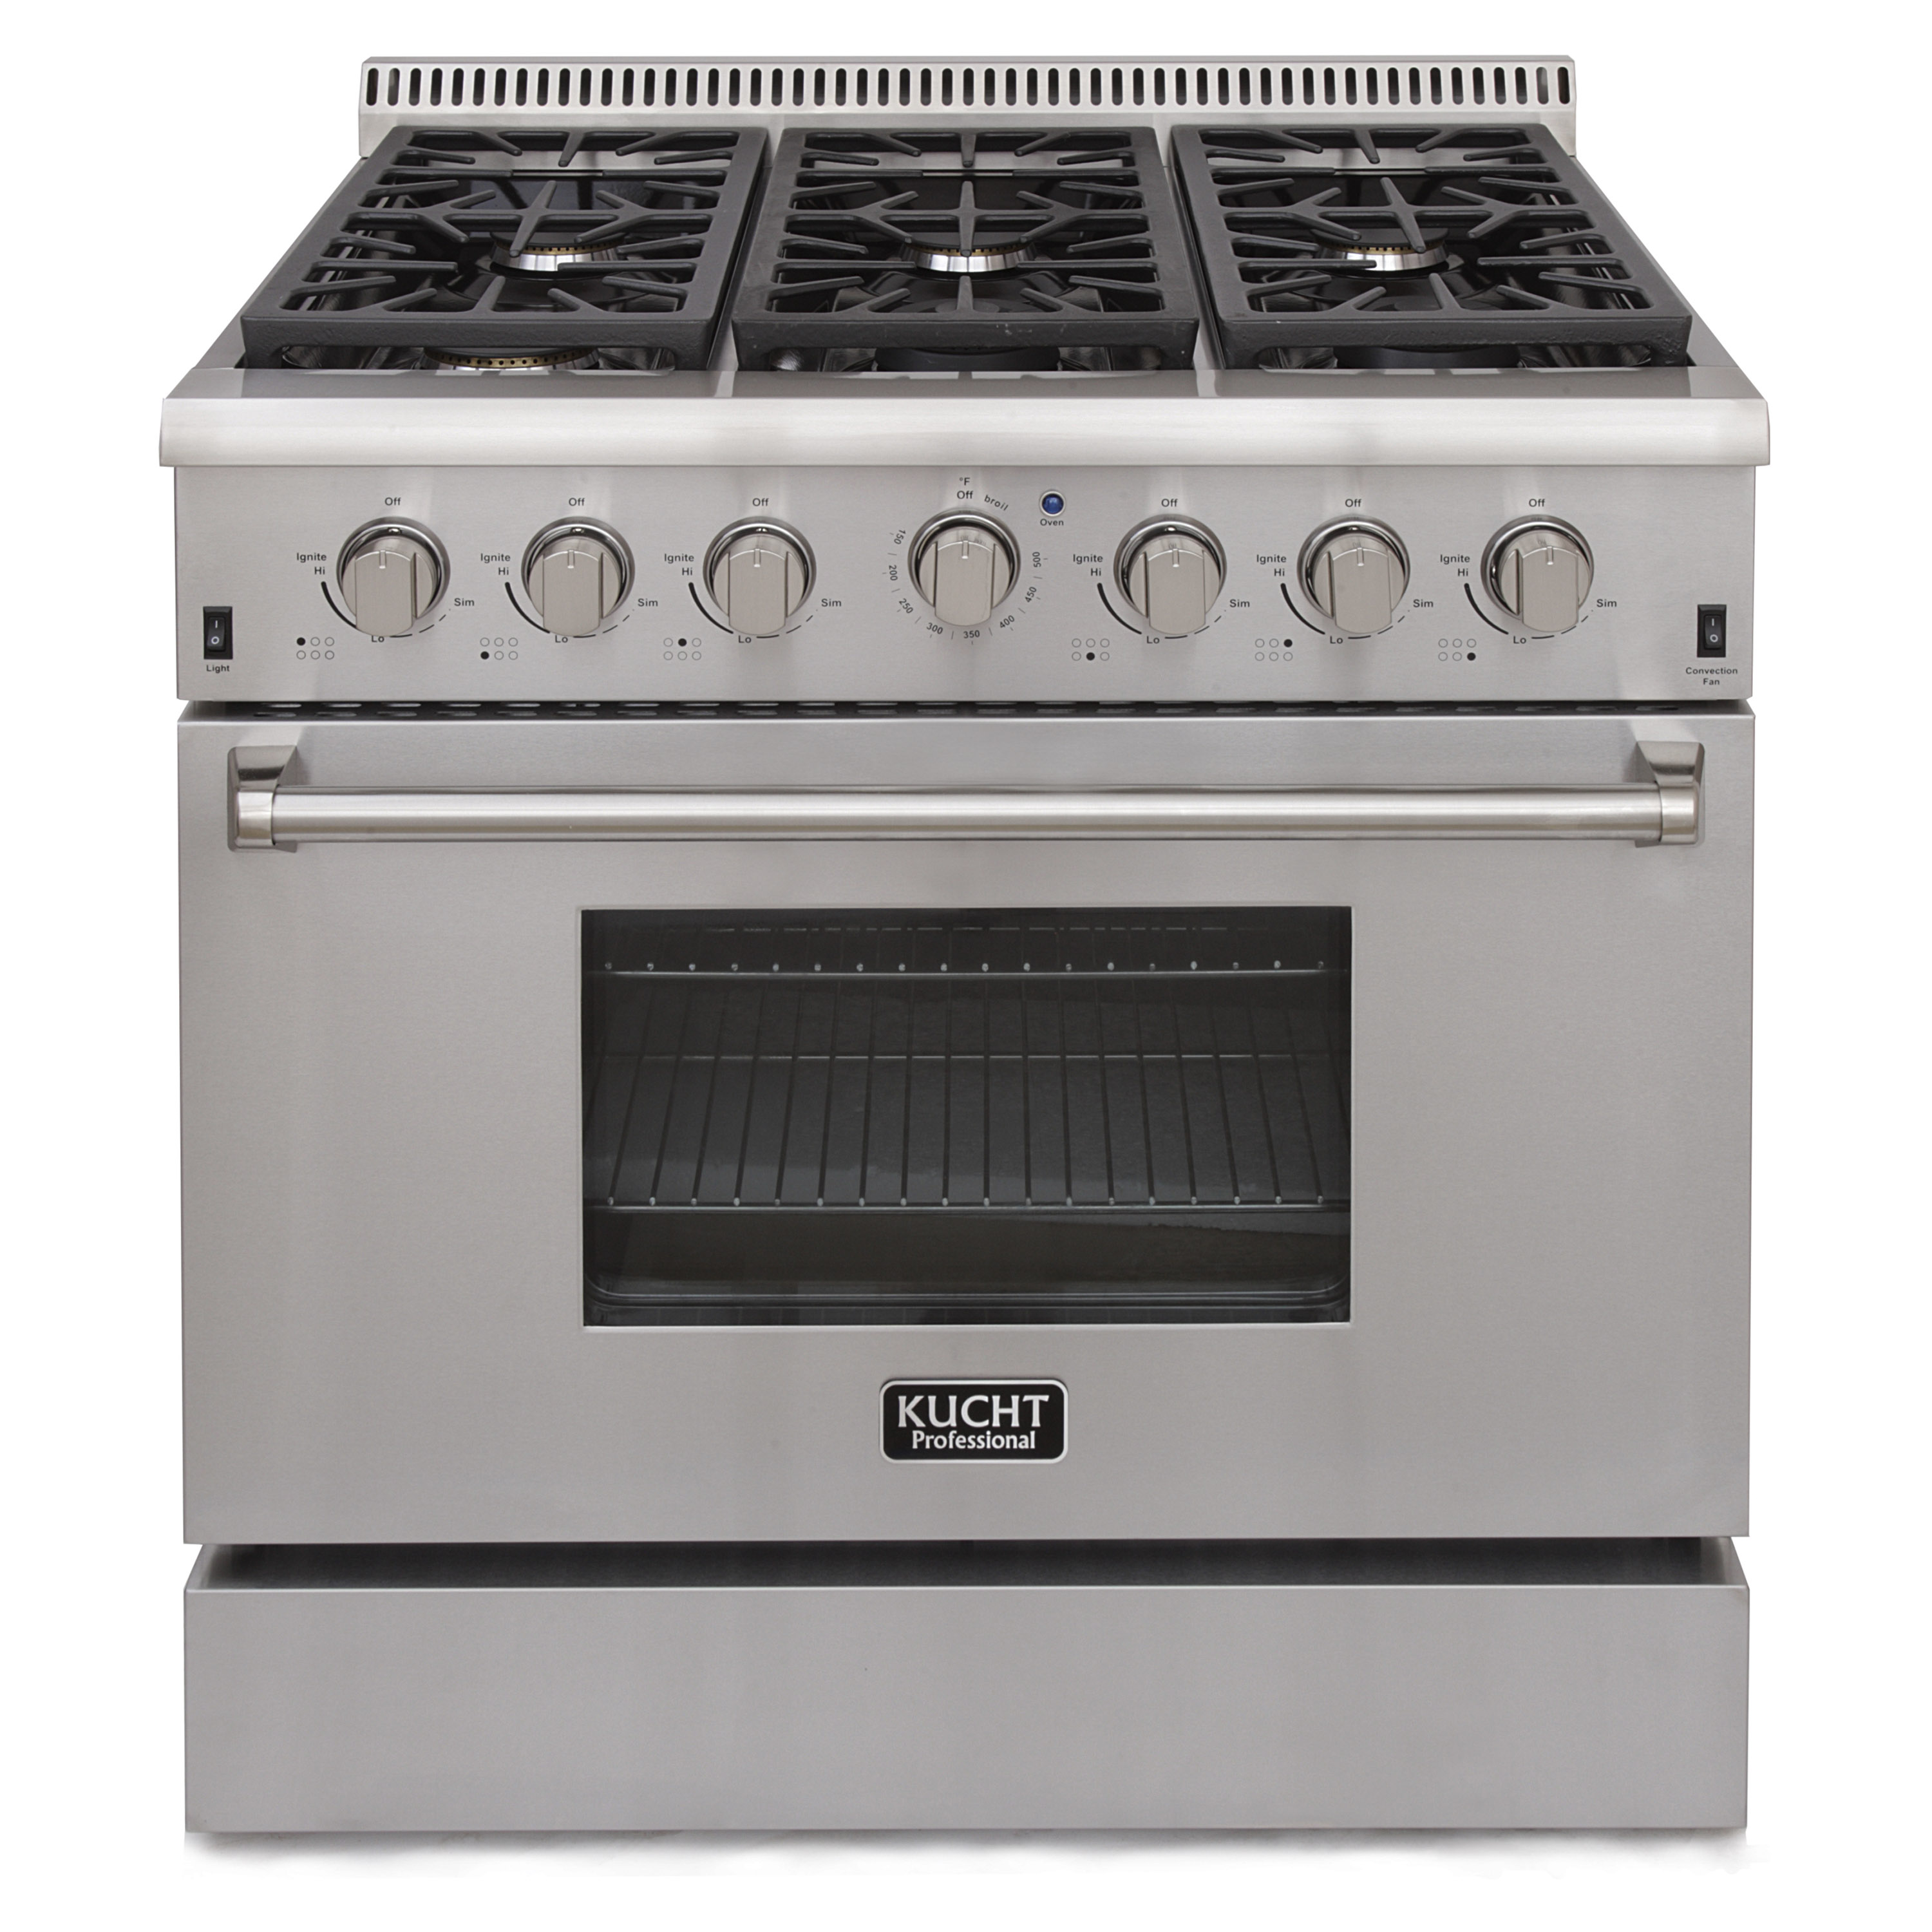 KUCHT Professional 36 in. 5.2 cu. ft. LP Gas Range with Sealed Burners and